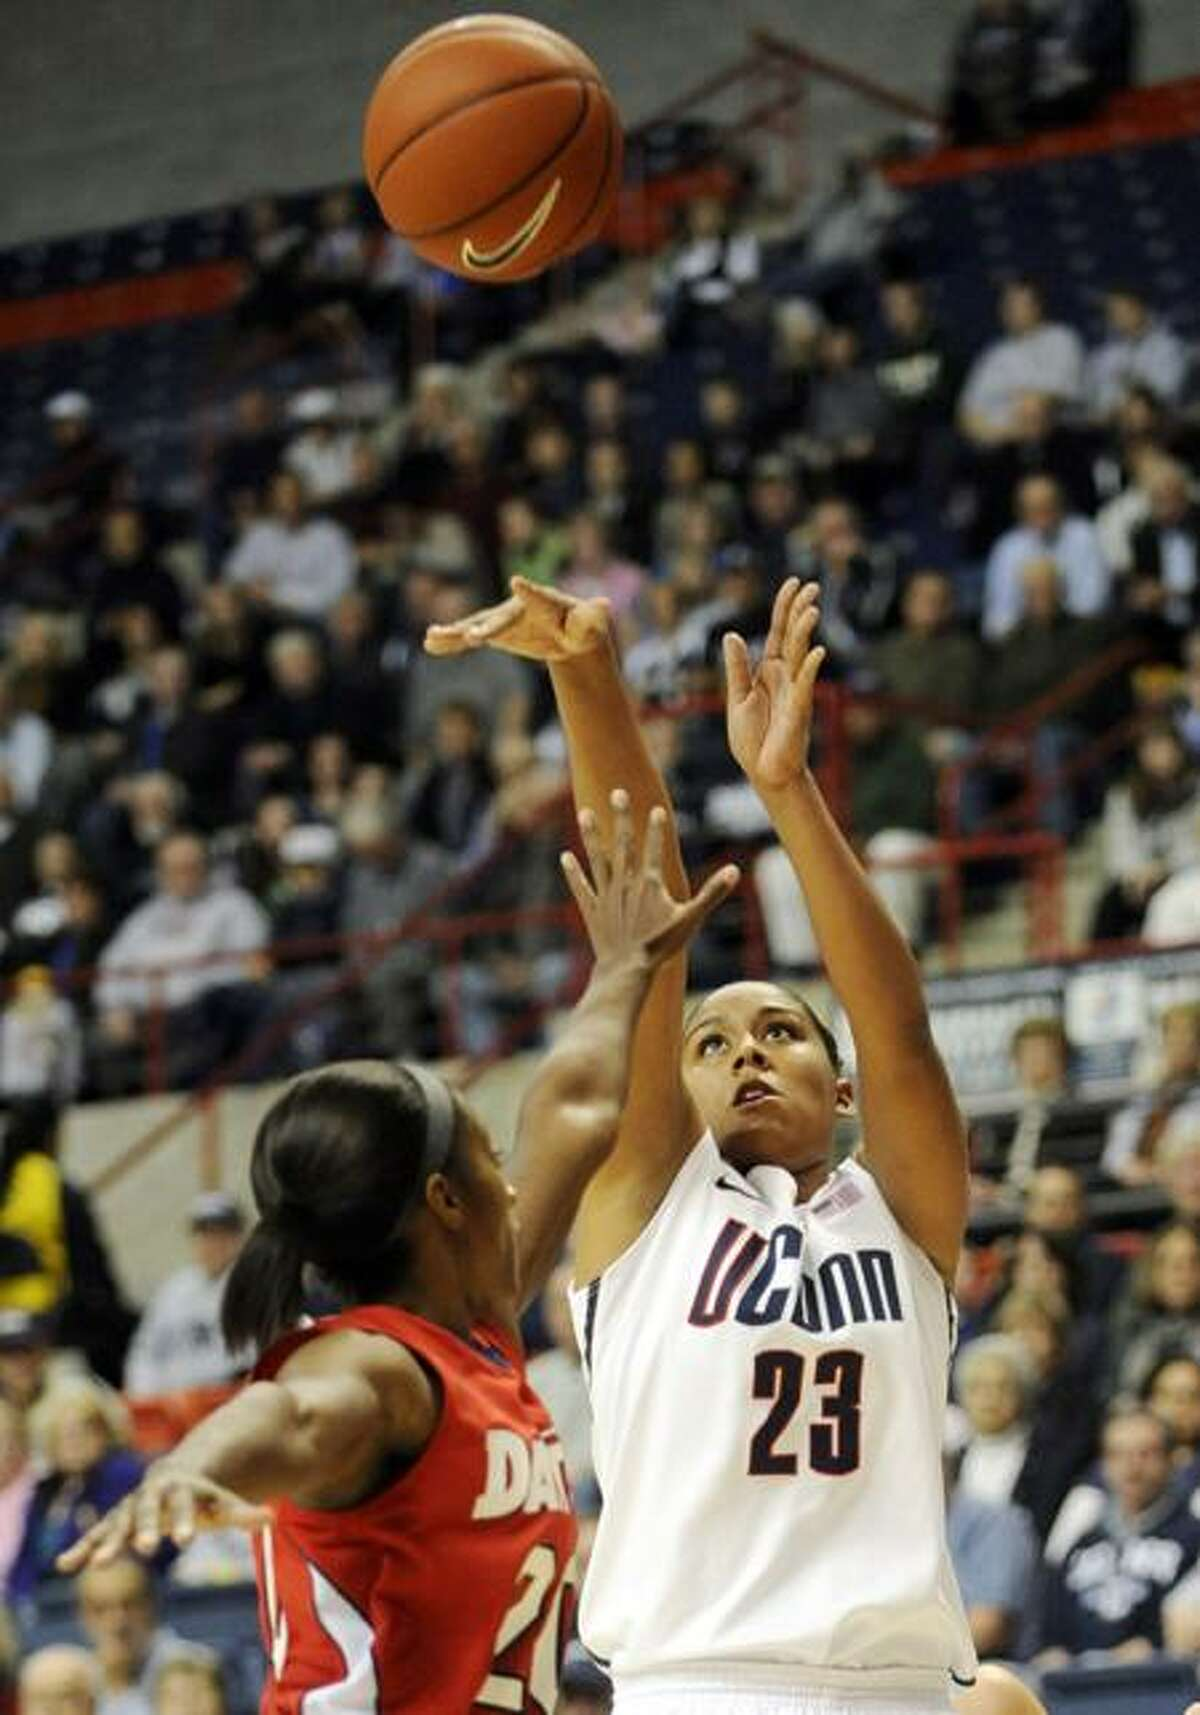 Connecticut's Kaleena Mosqueda-Lewis (23) shoots over Dayton's Patrice Lalor in the first half of an NCAA college basketball game in Storrs, Conn., Sunday, Nov. 27, 2011. Mosqueda-Lewis led No. 2 Connecticut with 23 points in a 78-38 victory. It was the team's 89th straight win at home to set an NCAA record. (AP Photo/Jessica Hill)